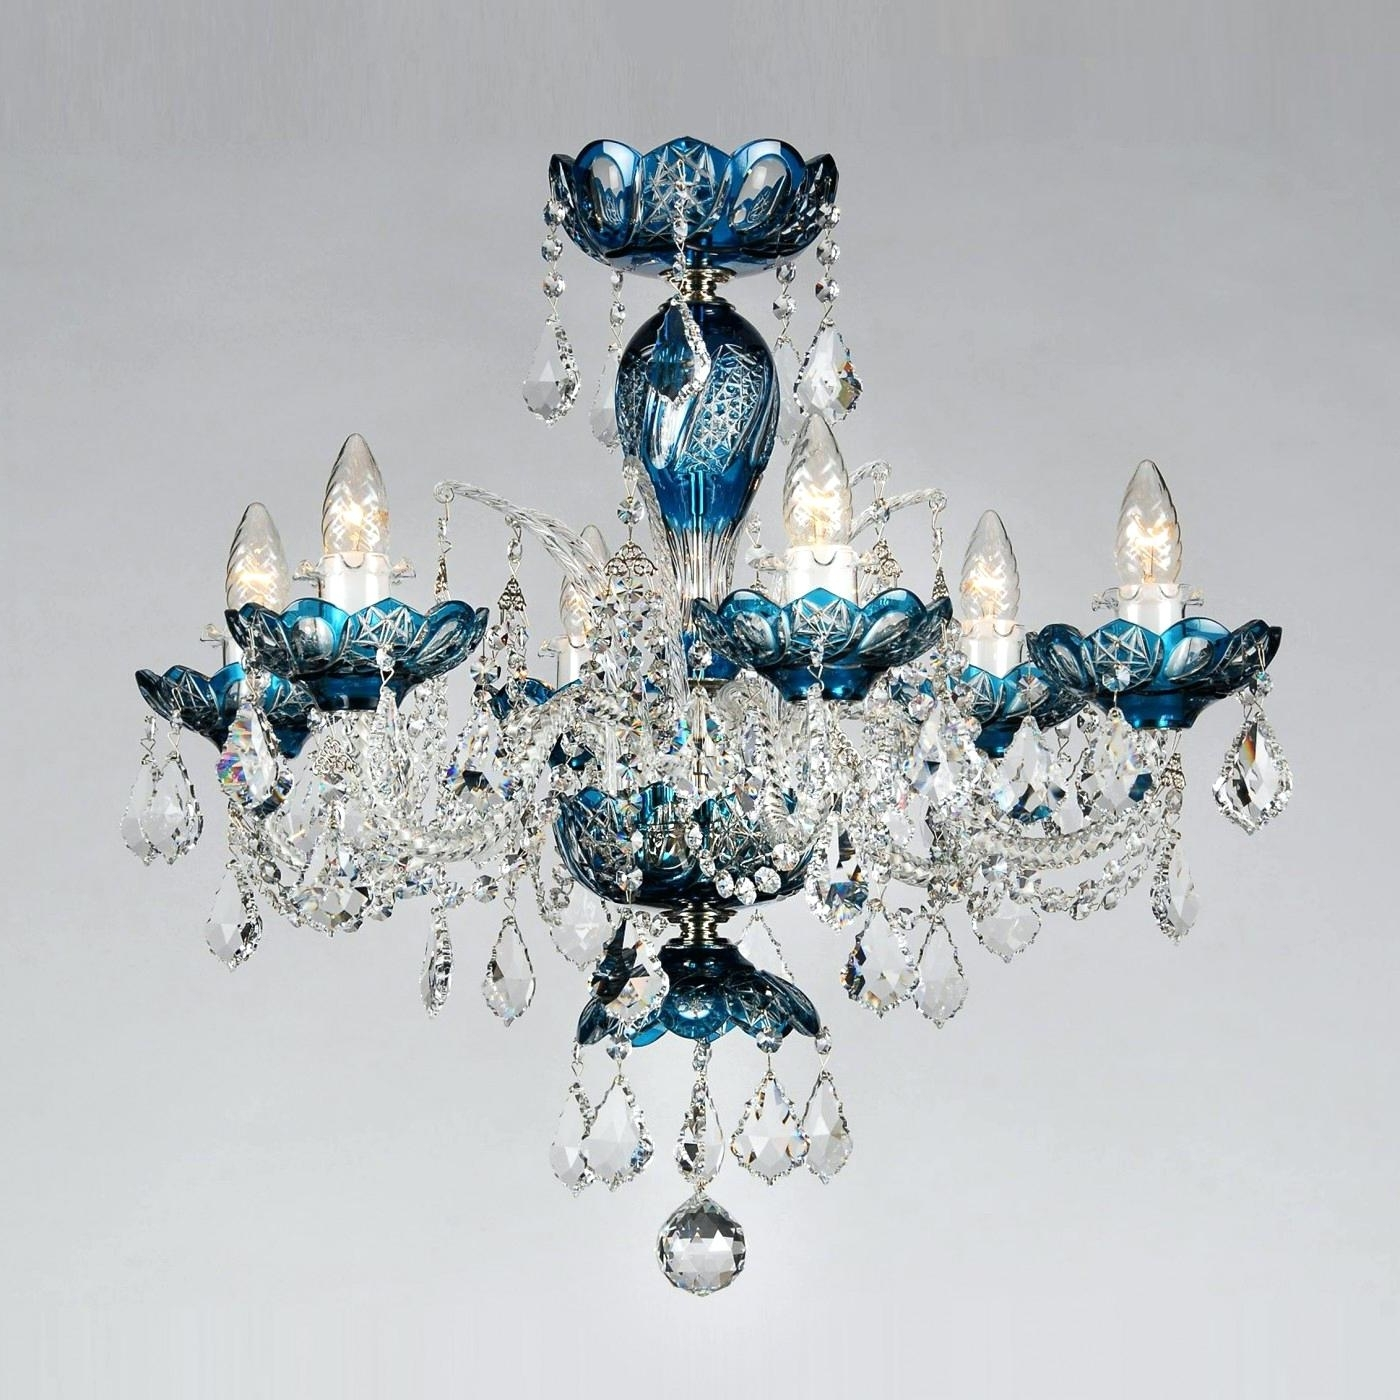 Preferred Chandelier : Turquoise Chandelier Crystals Classic Lighting Light Within Turquoise Chandelier Crystals (View 5 of 20)